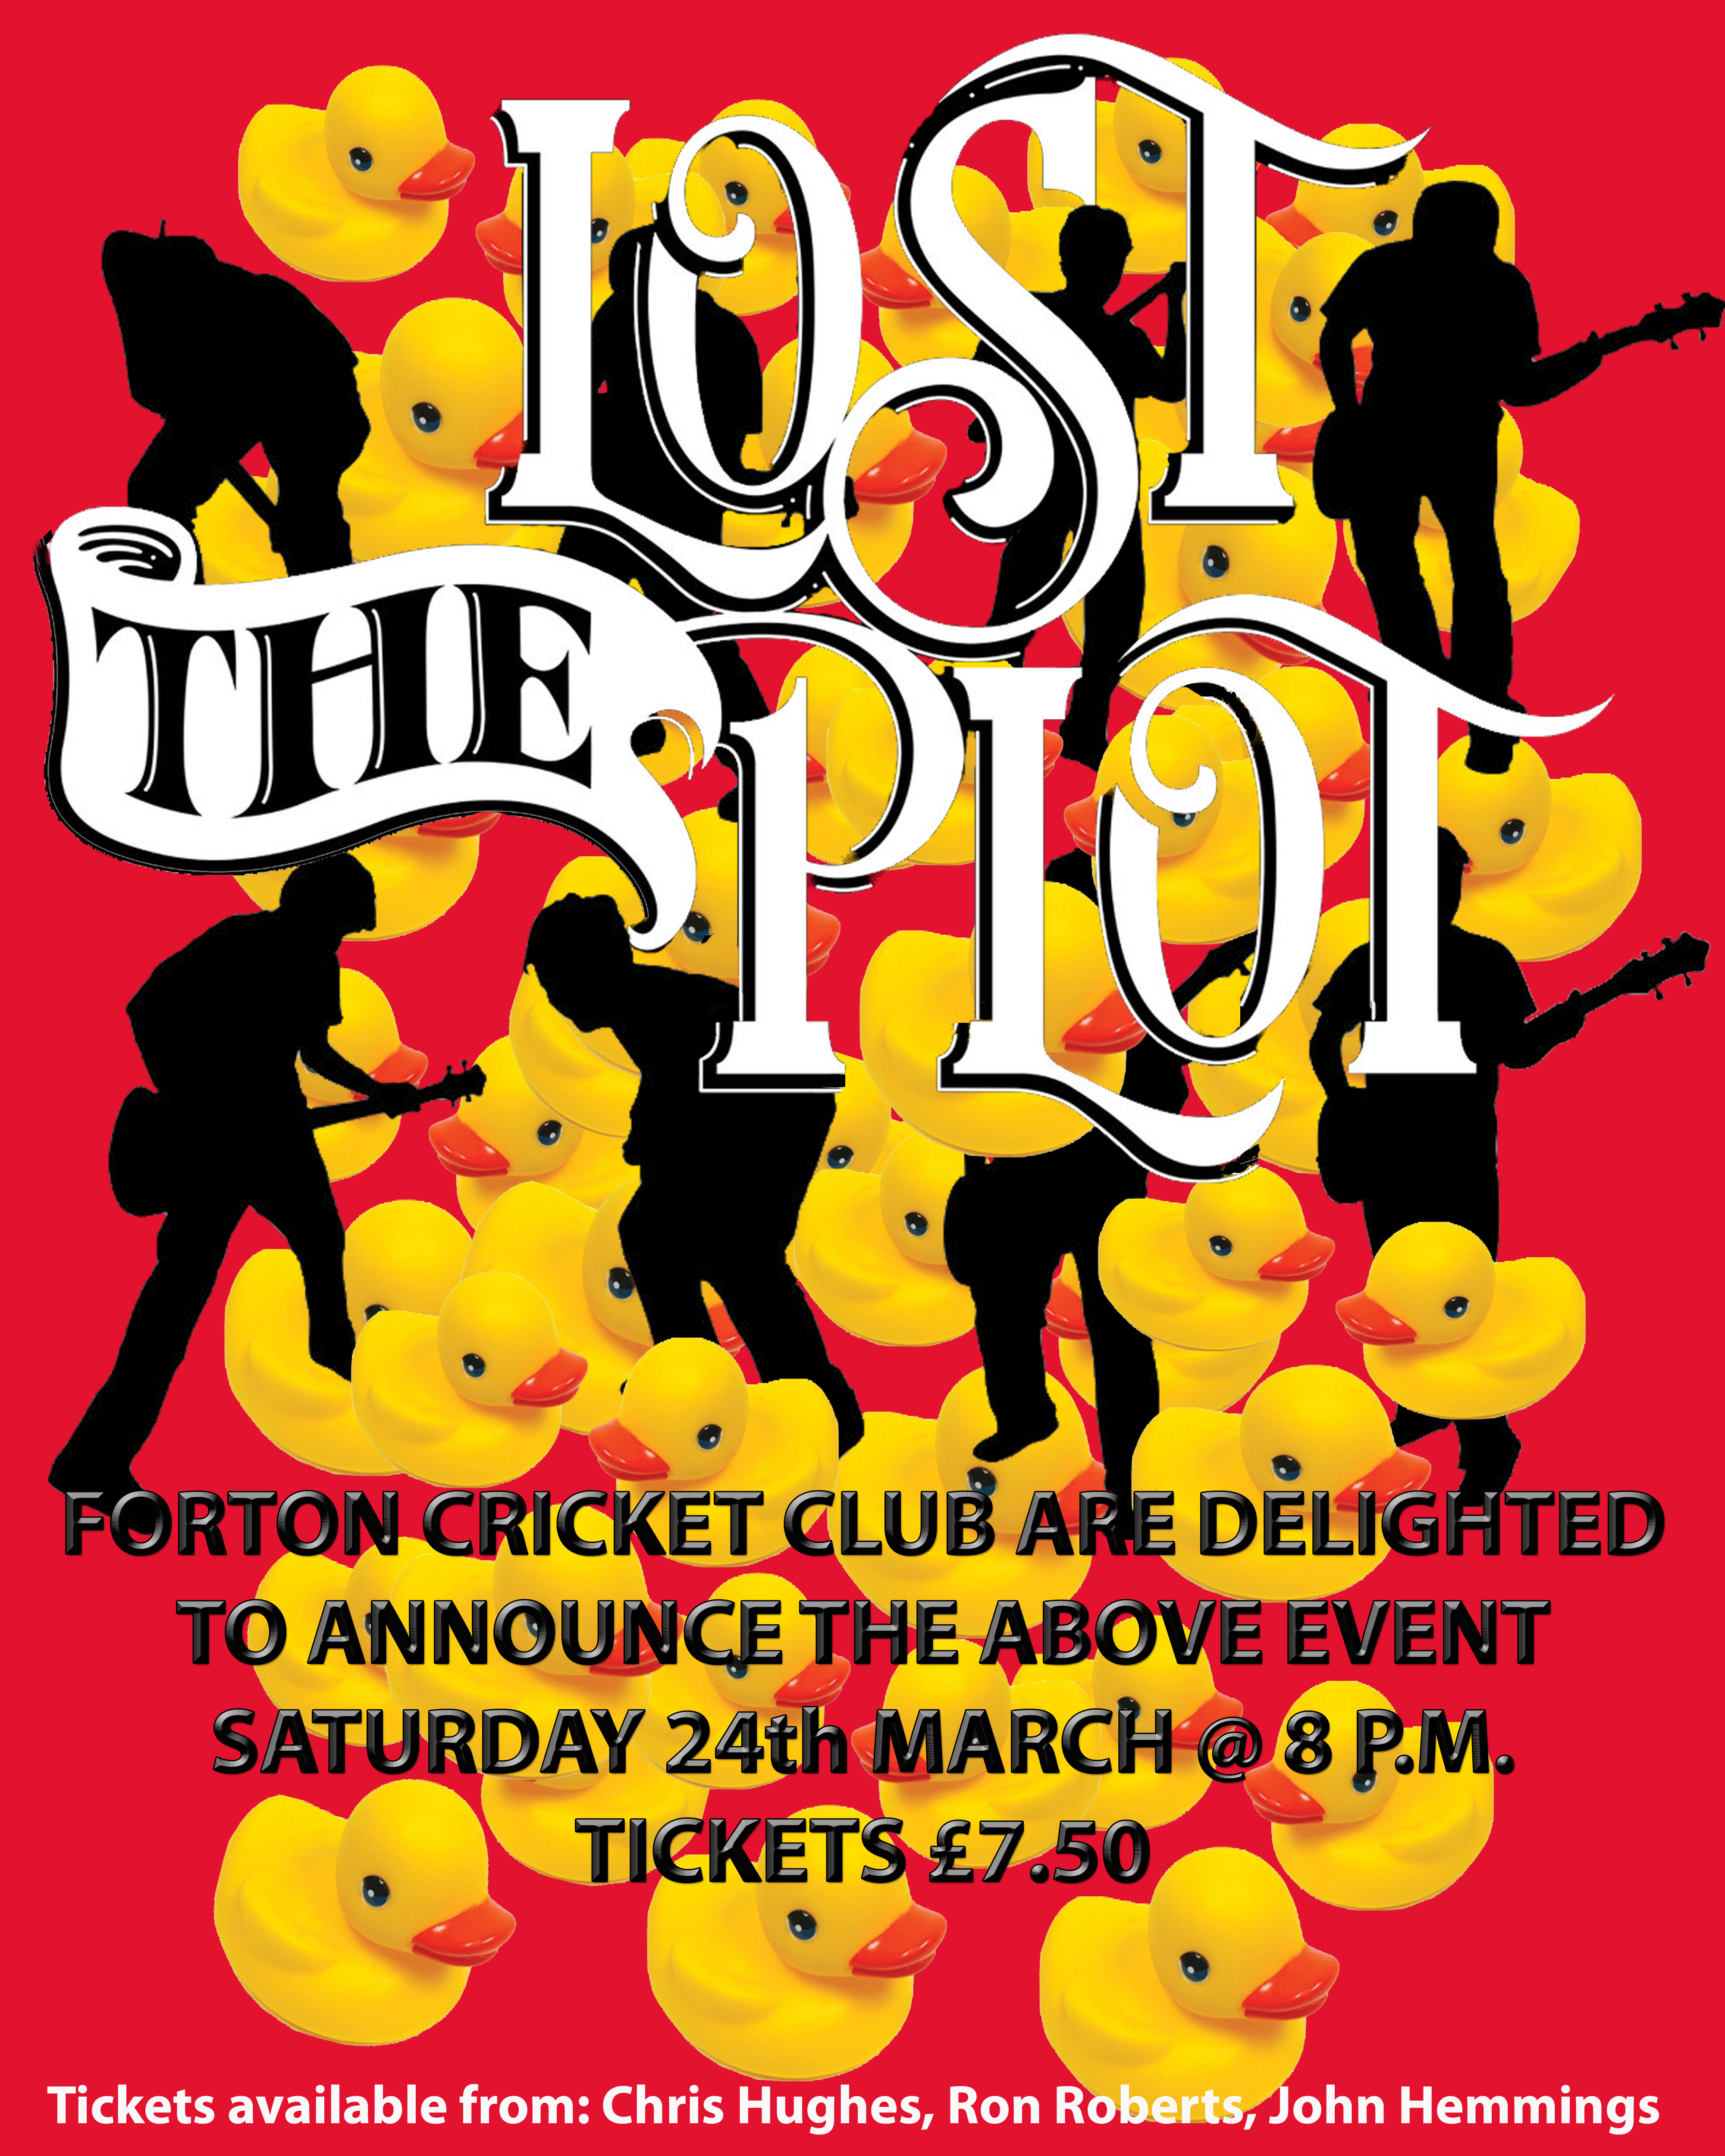 Lost_the_plot_poster_2789_